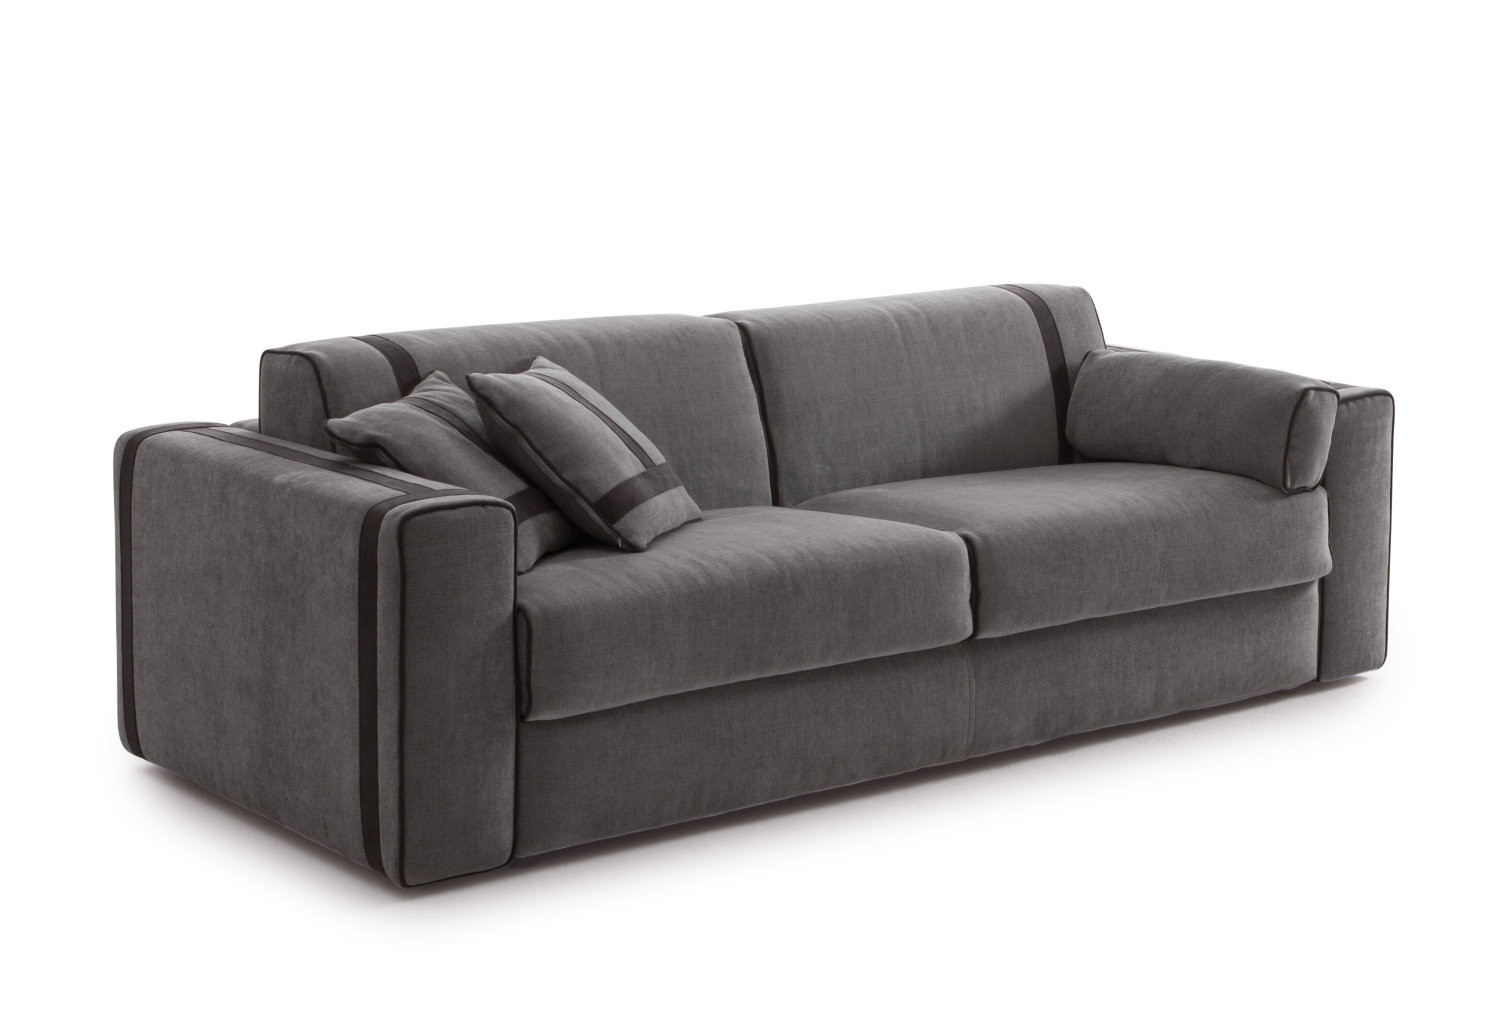 ellington sofa mit abnehmbaren kopfst tzen. Black Bedroom Furniture Sets. Home Design Ideas